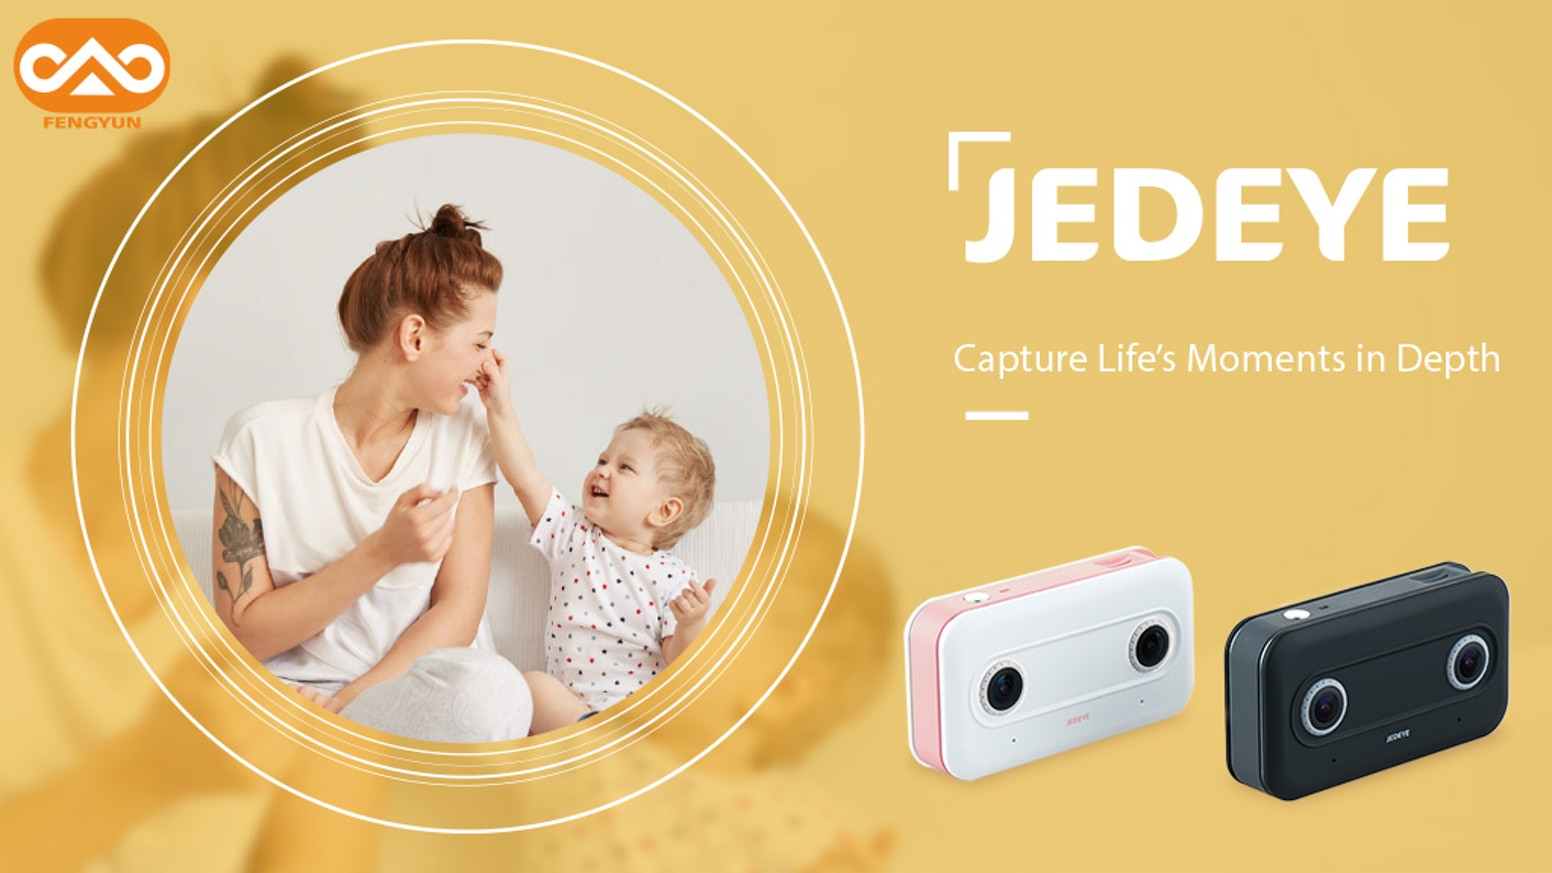 JEDEYE, a 3D stereo camera which captures the precious moments in 3D and record life's moments in depth. Take it anywhere in anytime.